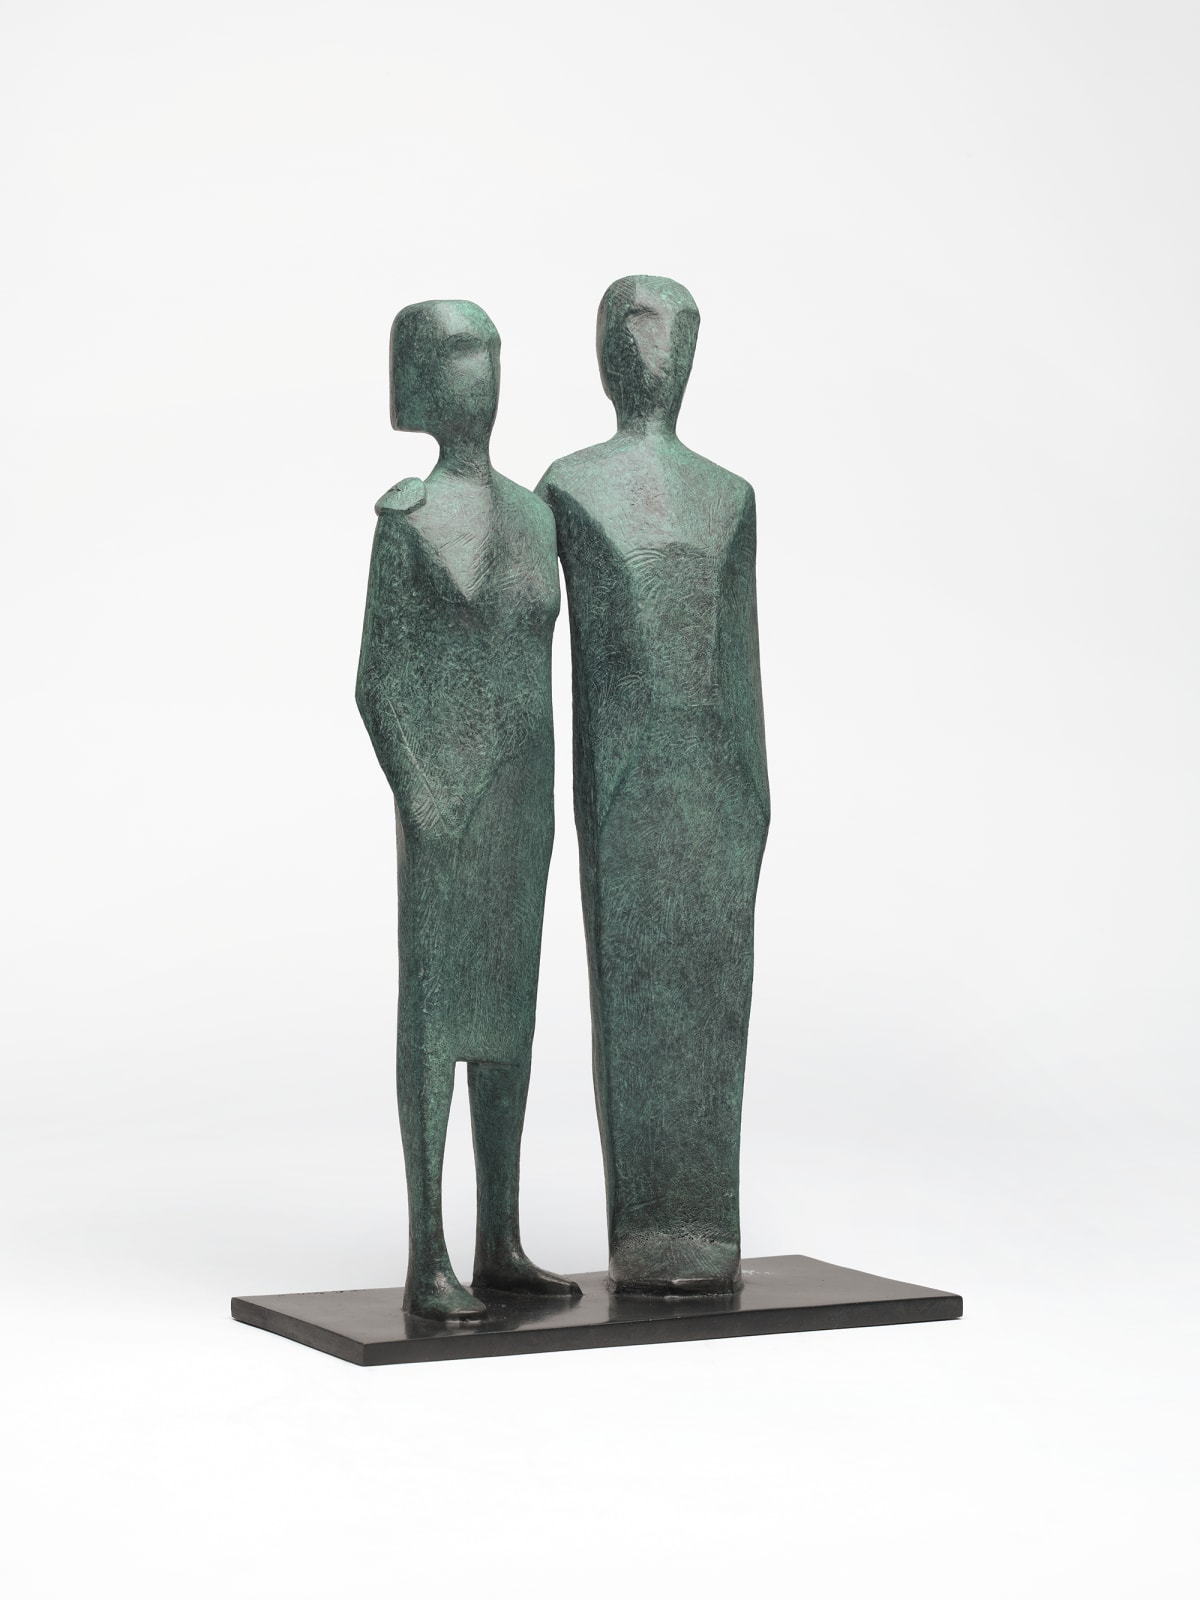 Terence Coventry, Standing Couple, 2011